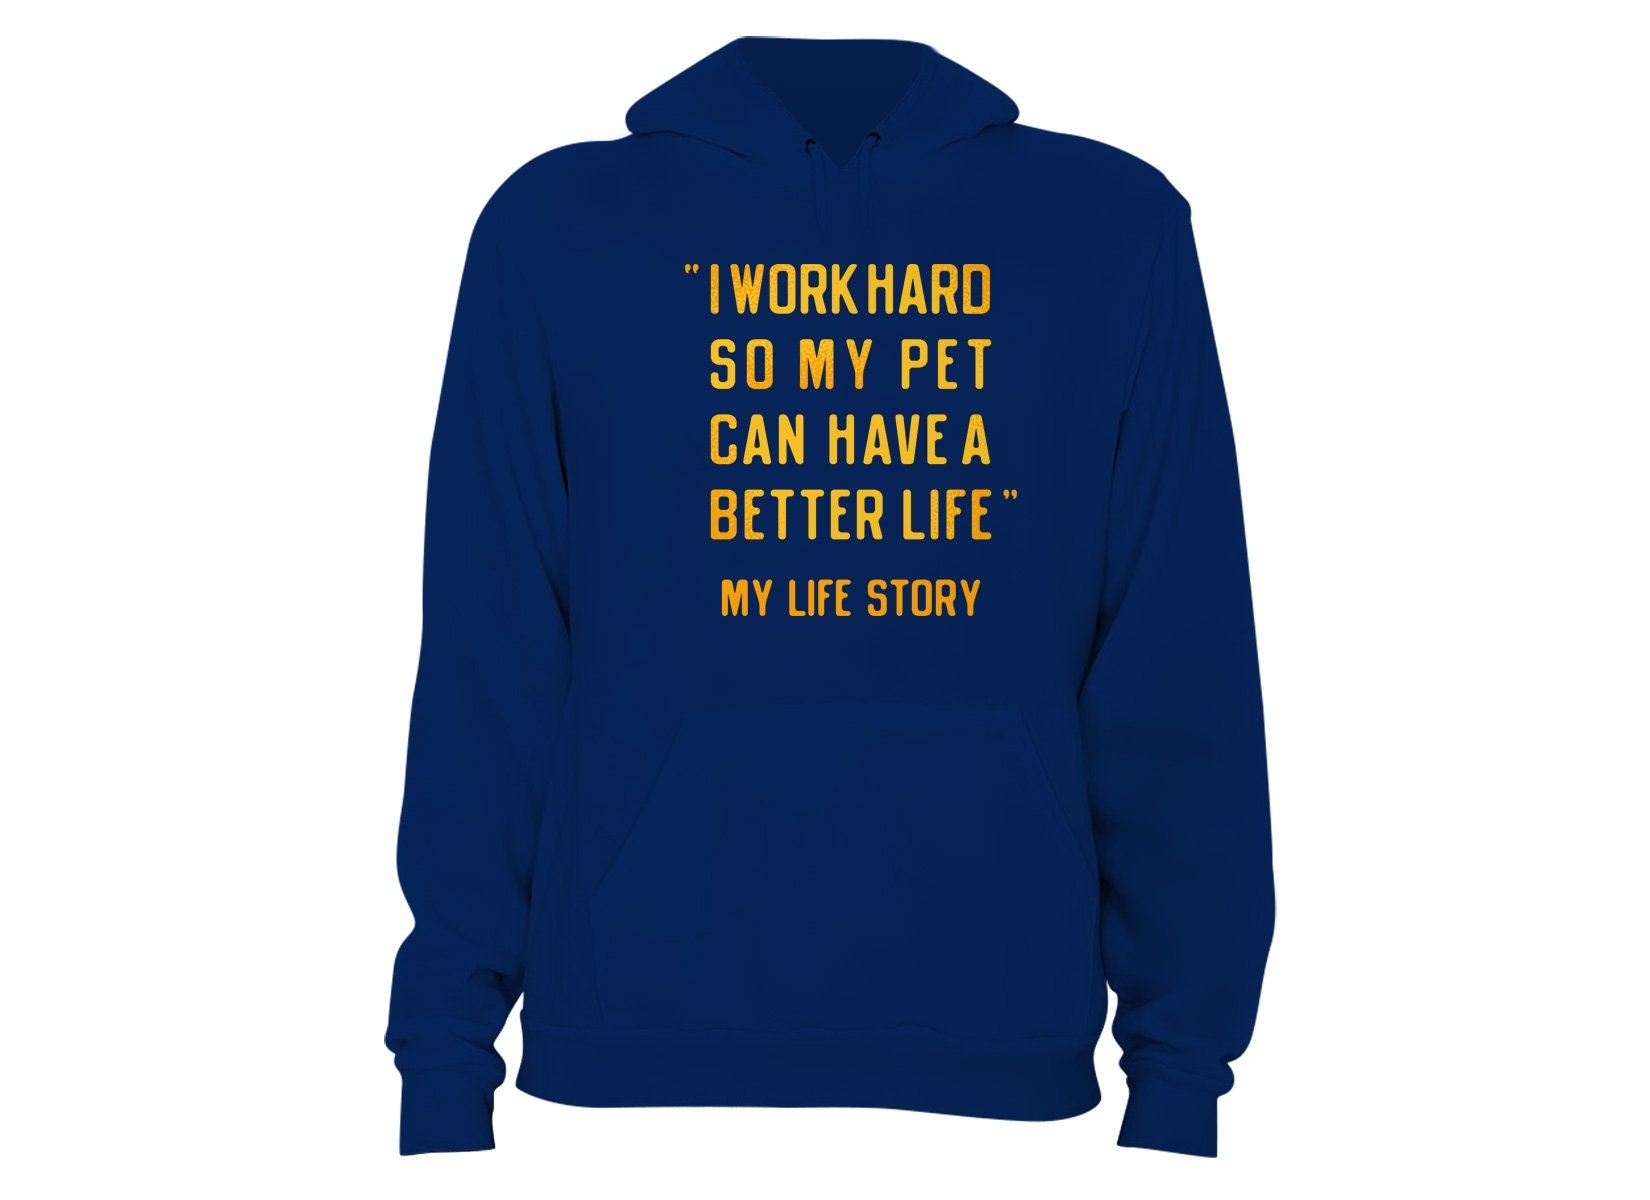 I Work Hard So My Pet Can Have A Better Life on Hoodie